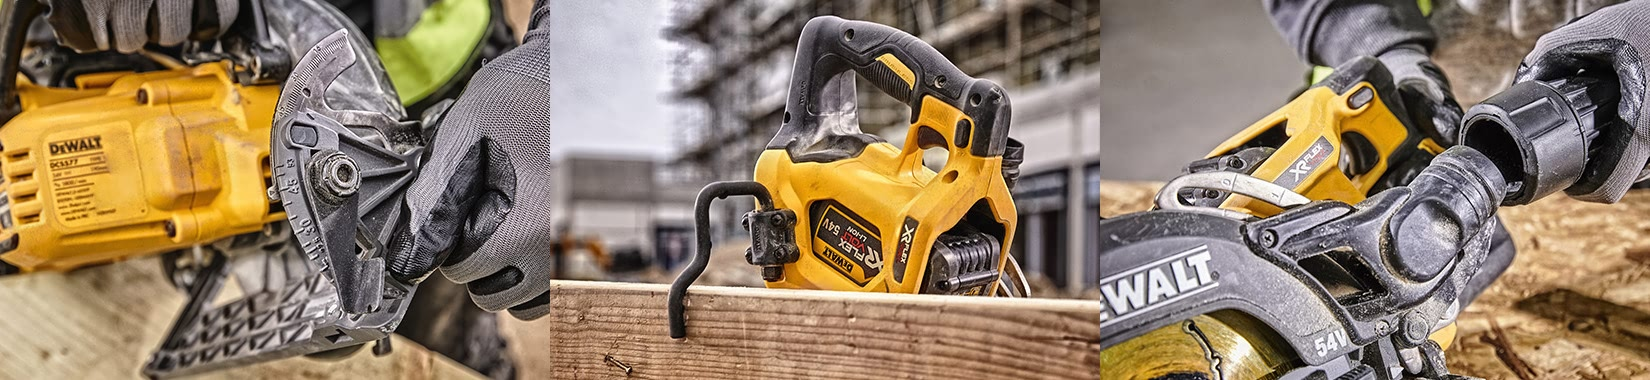 Dewalt circular saw applications